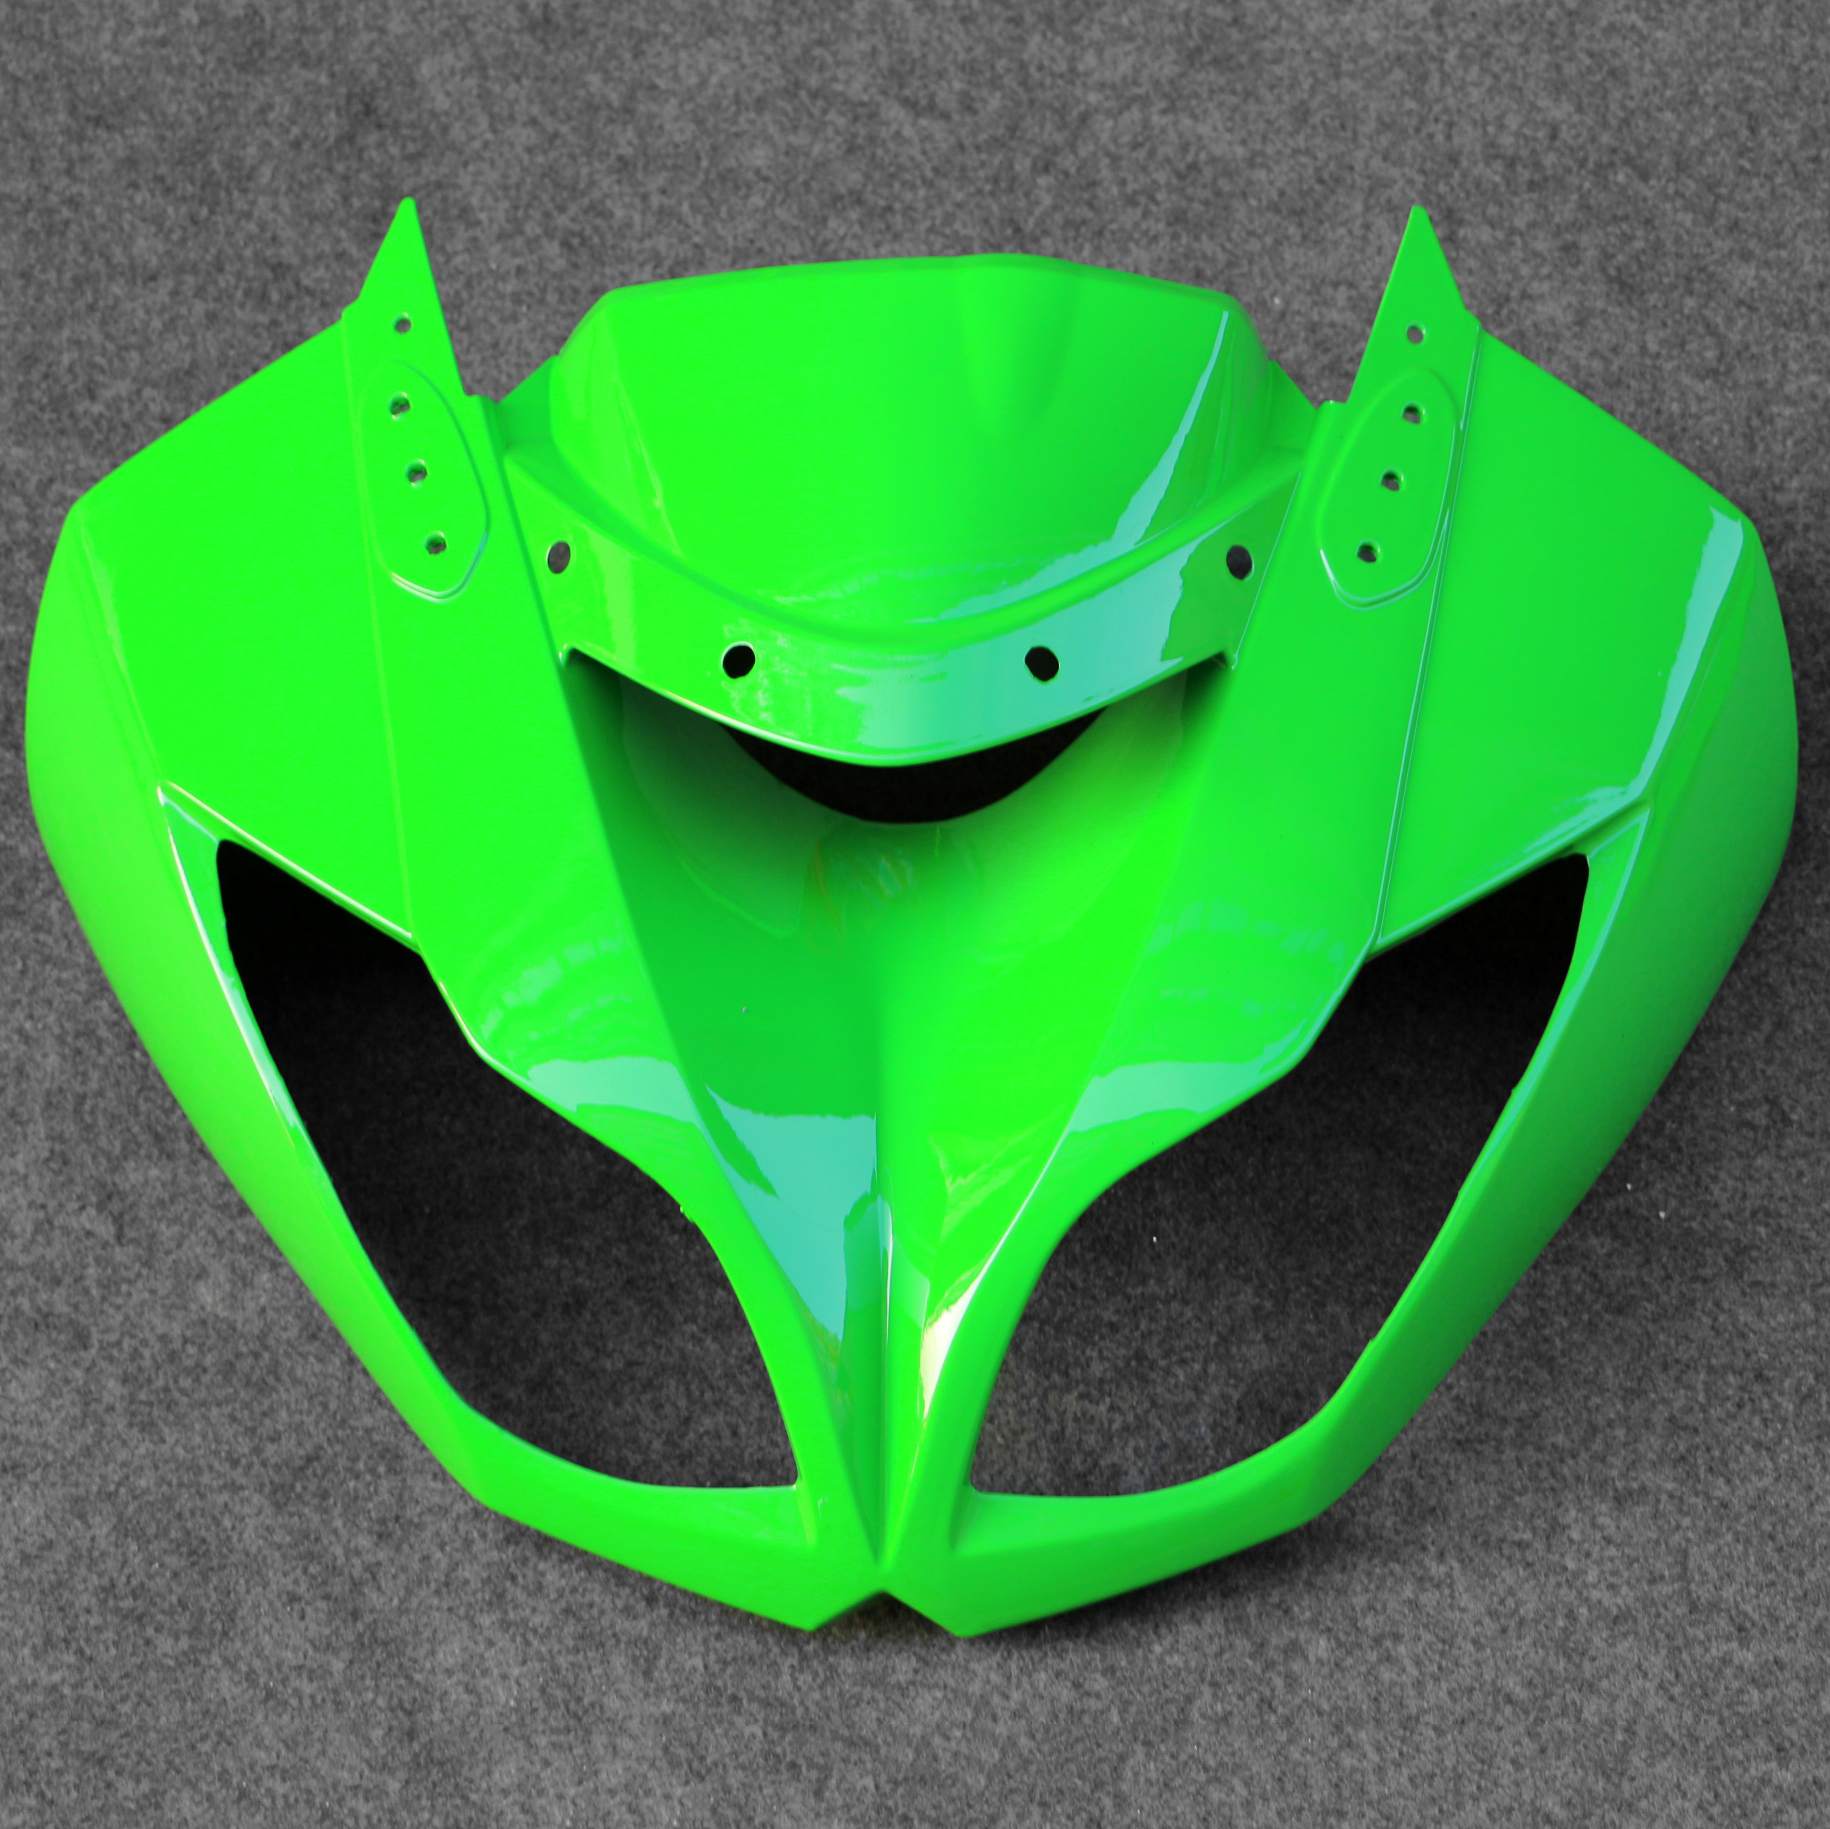 Fit For Kawasaki ZX6R 636 2009-2012 ABS Front Upper Nose Cowl Headlight FairingFit For Kawasaki ZX6R 636 2009-2012 ABS Front Upper Nose Cowl Headlight Fairing